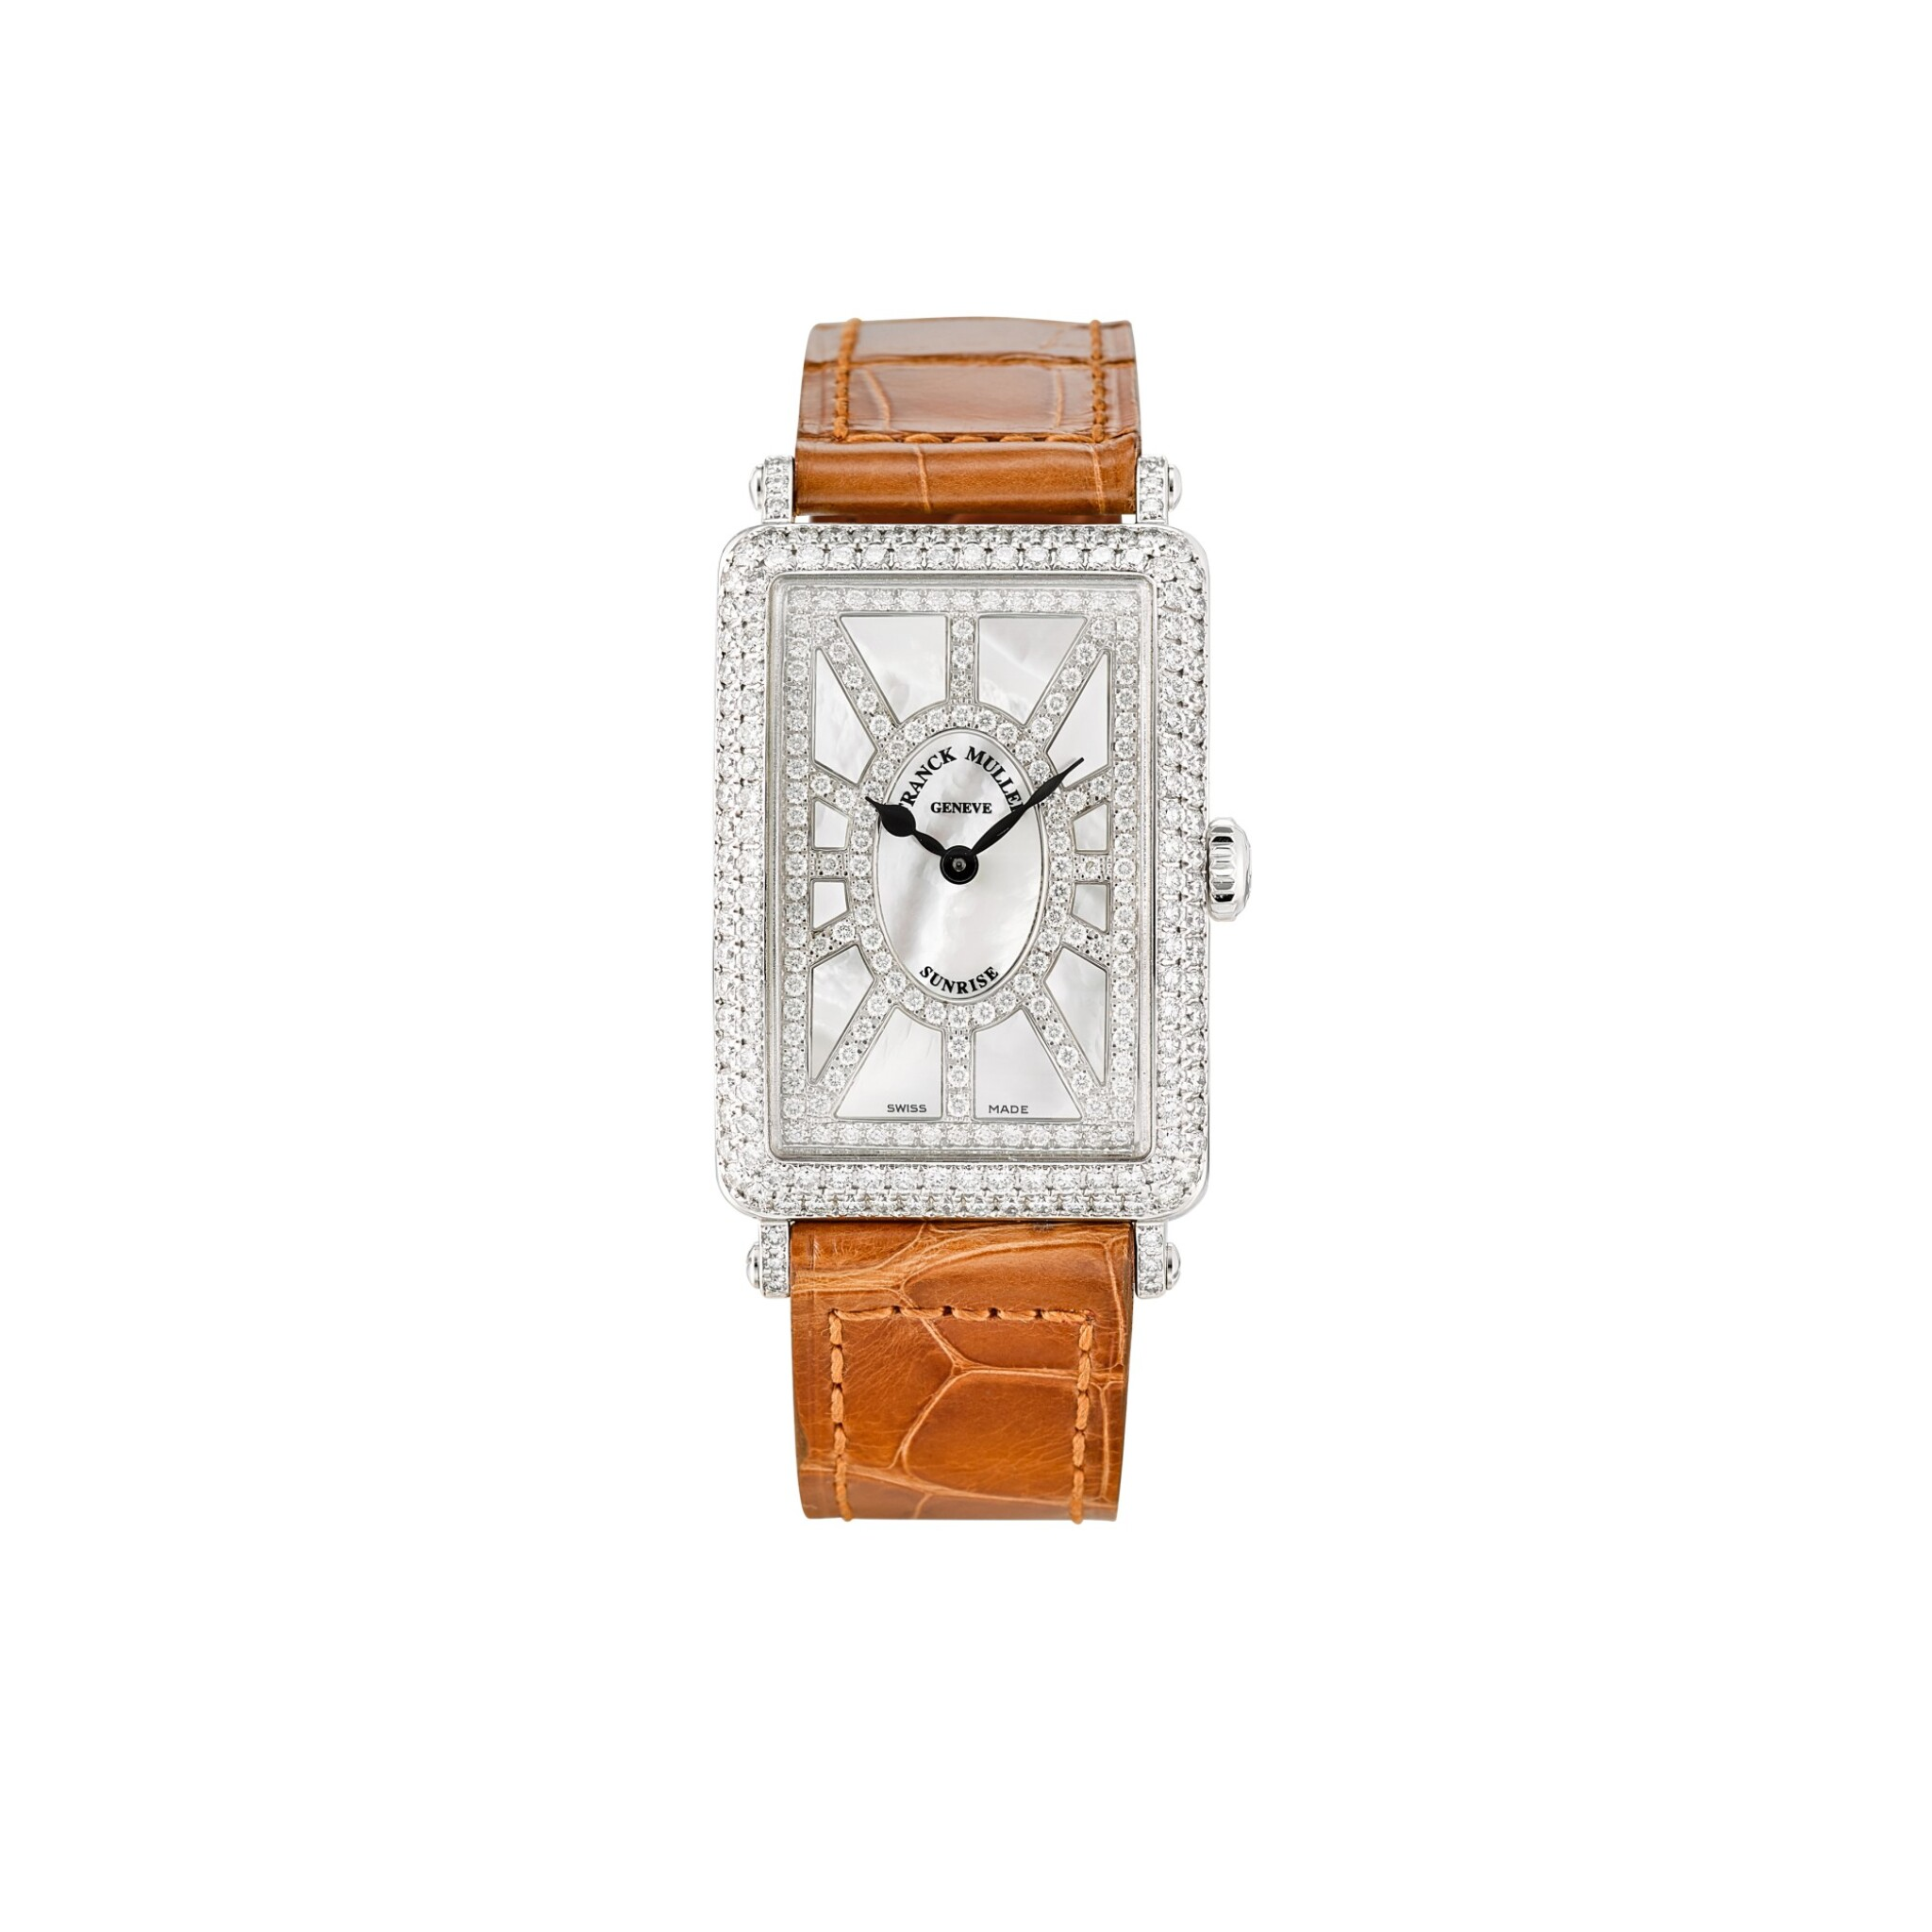 View full screen - View 1 of Lot 106. FRANCK MULLER | LONG ISLAND, REFERENCE 952 QZ SNR D CD, A WHITE GOLD AND DIAMOND-SET WRISTWATCH WITH MOTHER-OF-PEARL DIAL, CIRCA 2018.